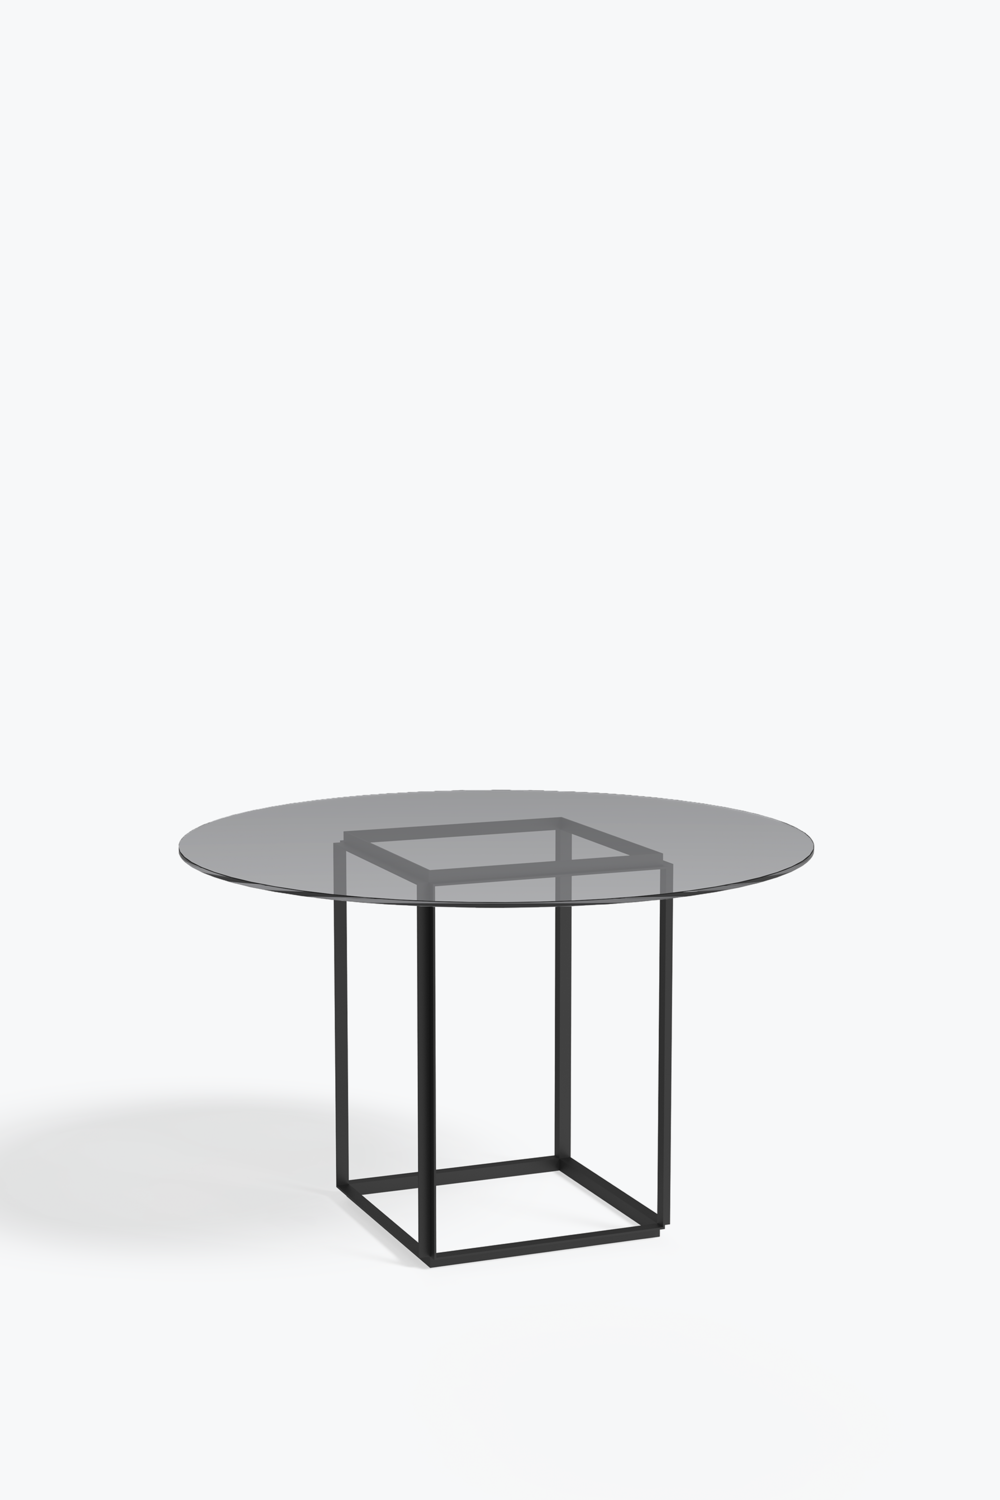 Florence dining table ø 120 cm iron black frame w smoked glass table top